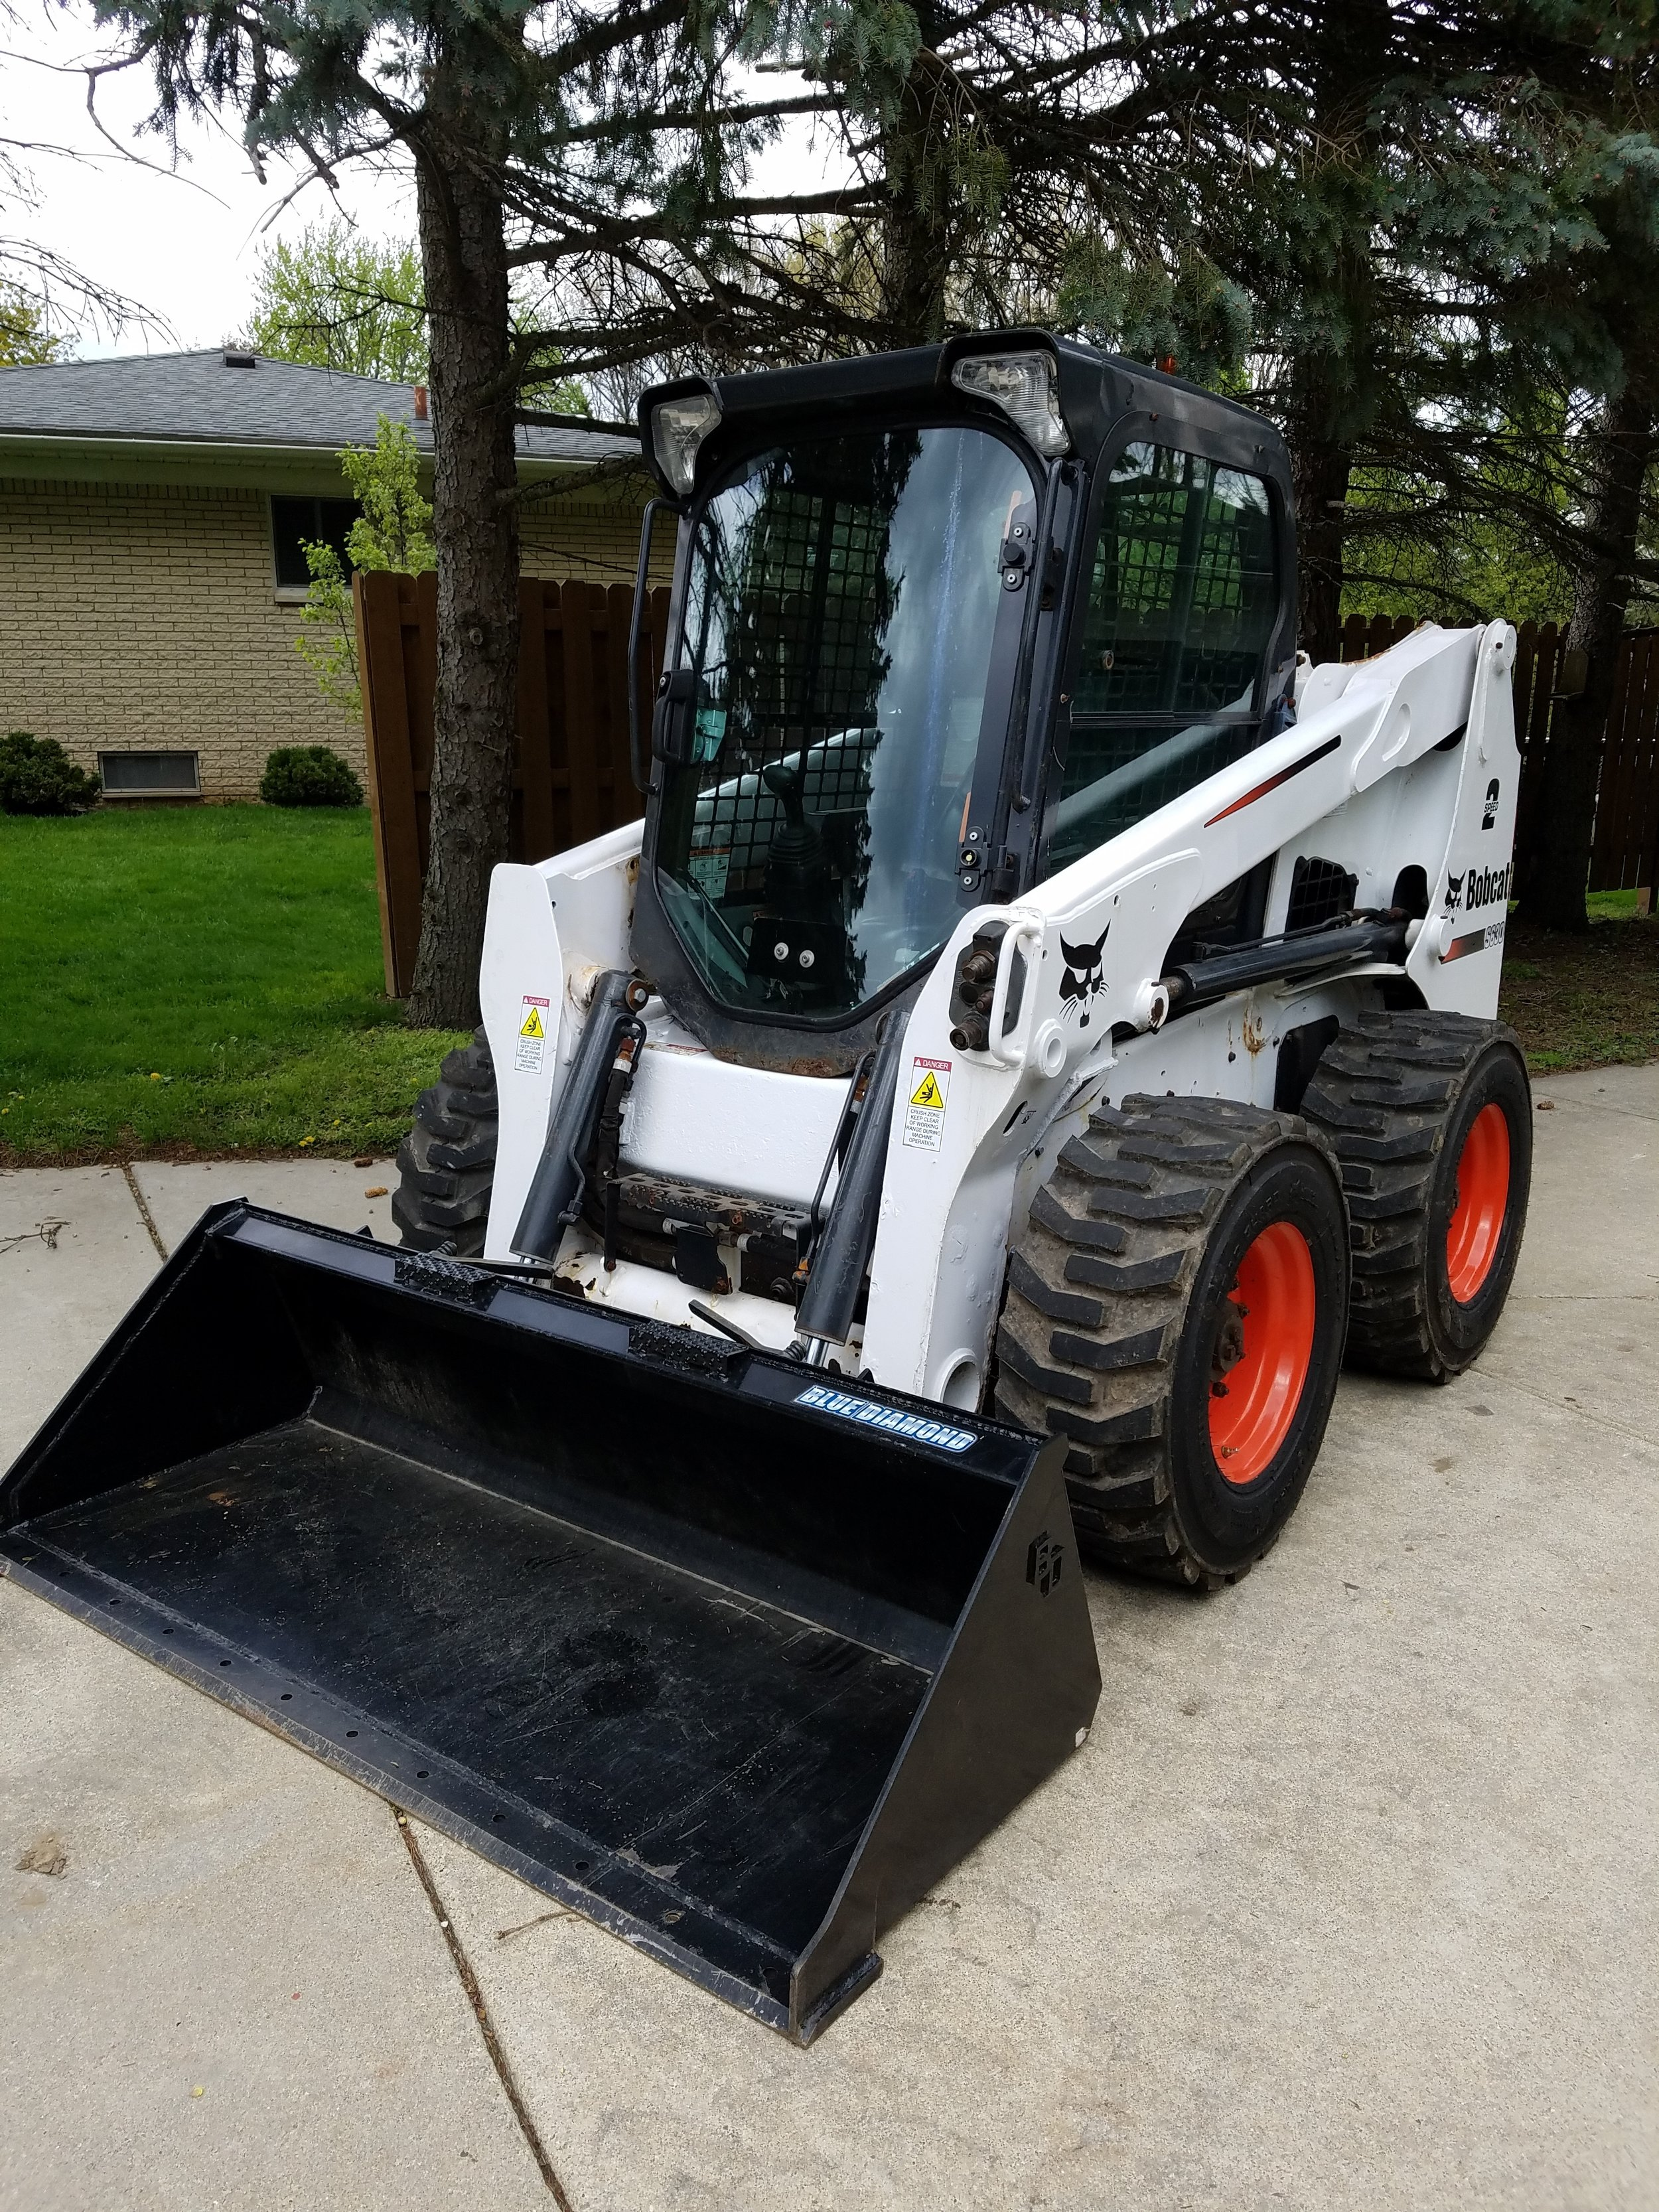 2012 Bobcat S630 Skidsteer | 865 hours | EROPS Cab | Hand and/or Foot control option | Heat & AC option included | New bucket | Newer wheels and tires | $28,500.00